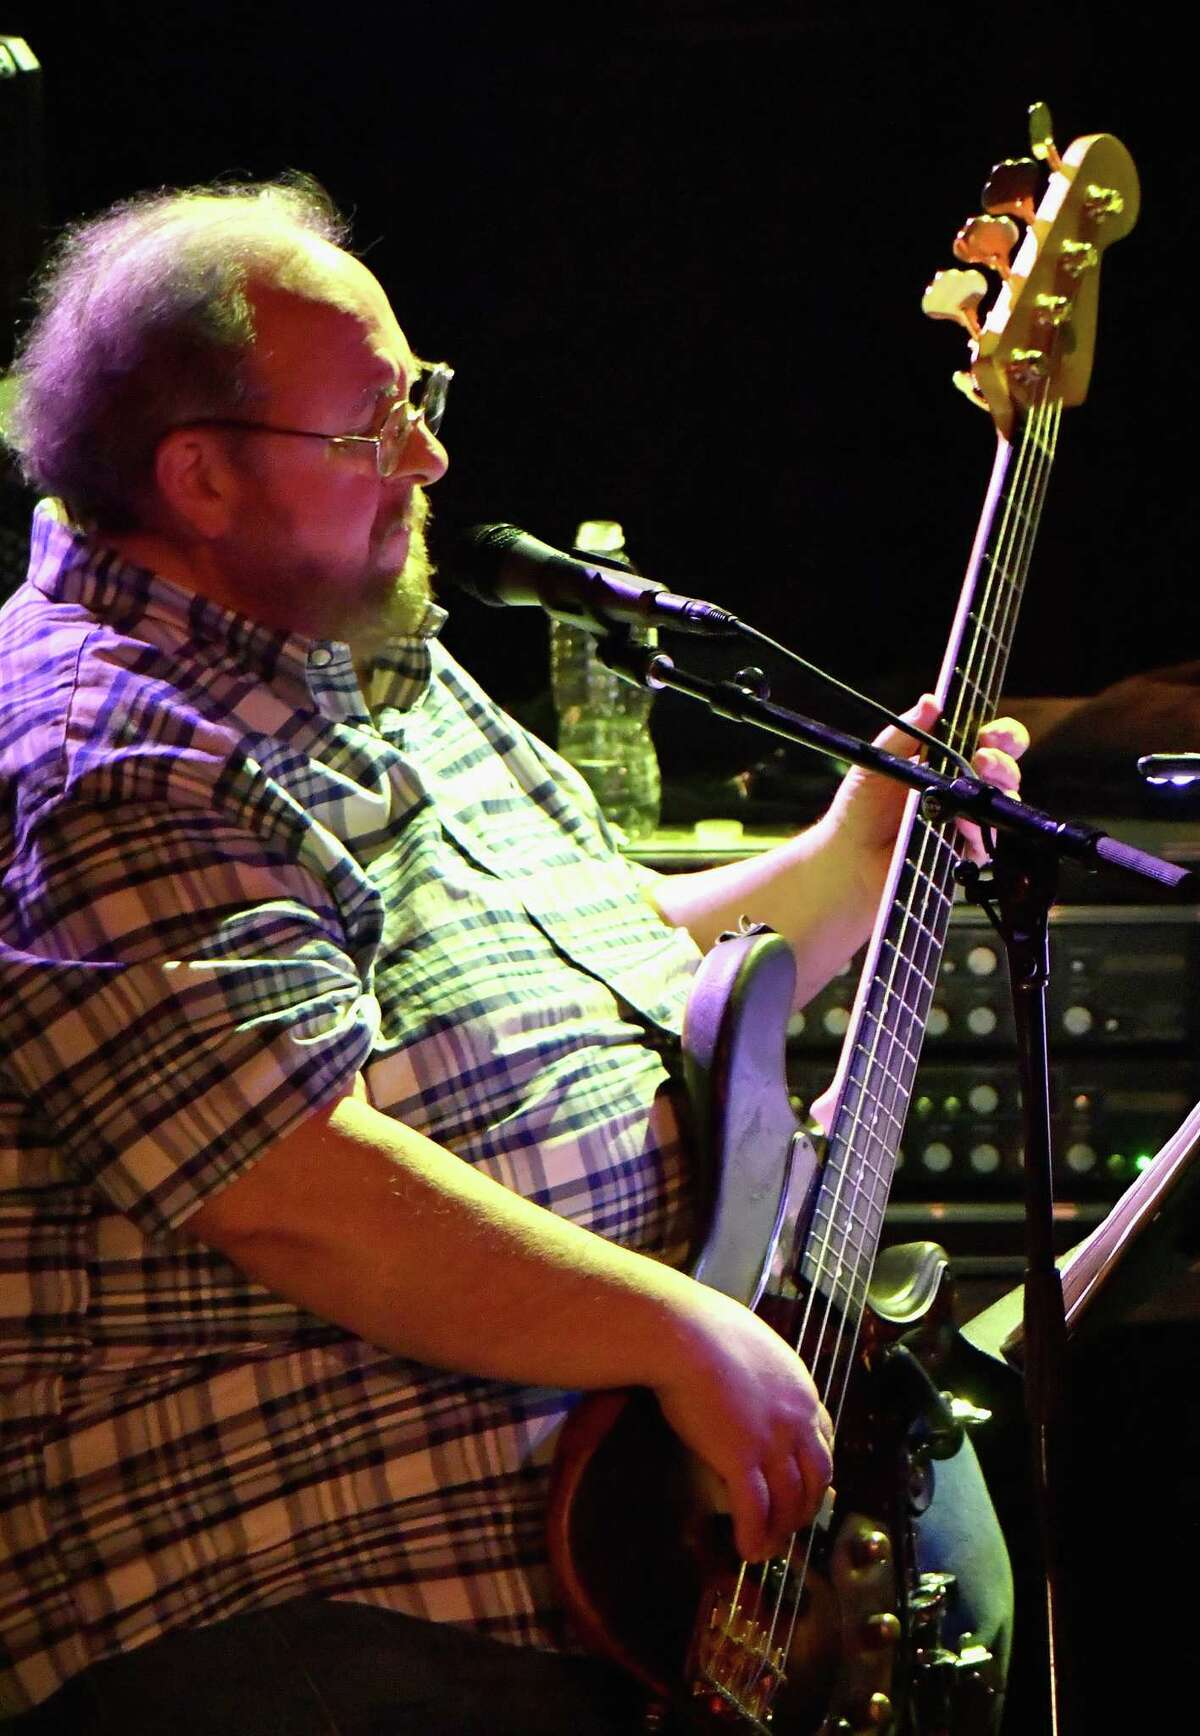 Bassist Tony Markellis performs onstage in the Trey Anastasio Trio in Concert at the Civic Theatre on April 28, 2018 in New Orleans. The Saratoga Springs guitarist died April 29, 2021.